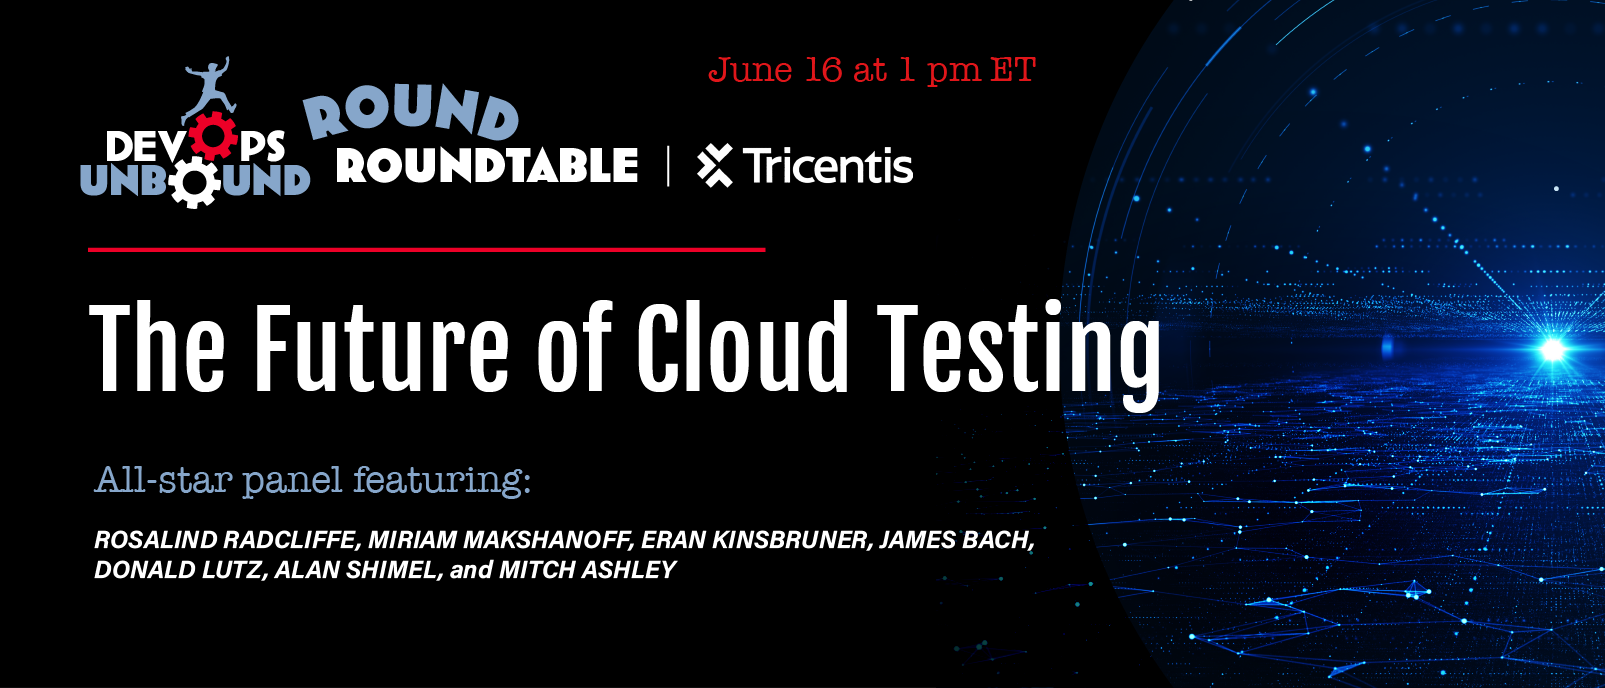 The Future of Cloud Testing